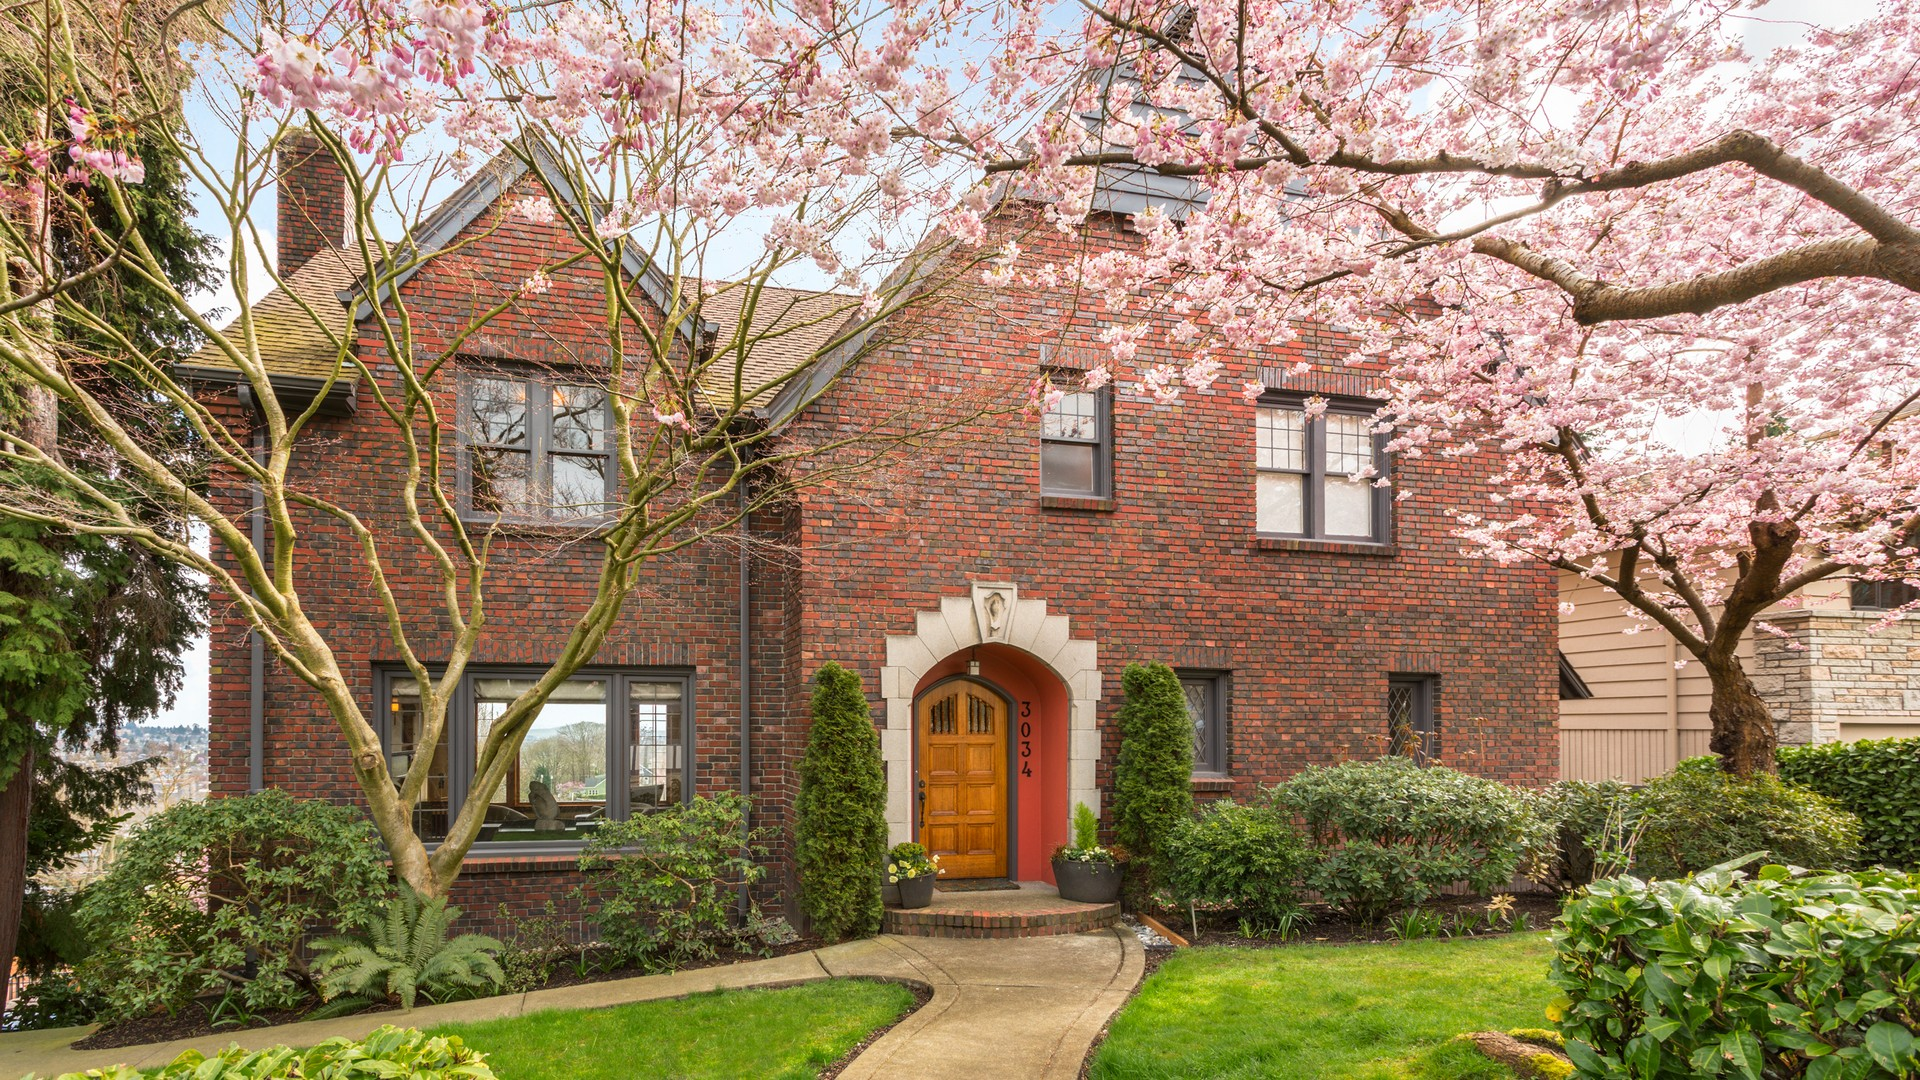 Single Family Home for Sale at Queen Anne Tudor 3034 10th Ave W Seattle, Washington 98119 United States